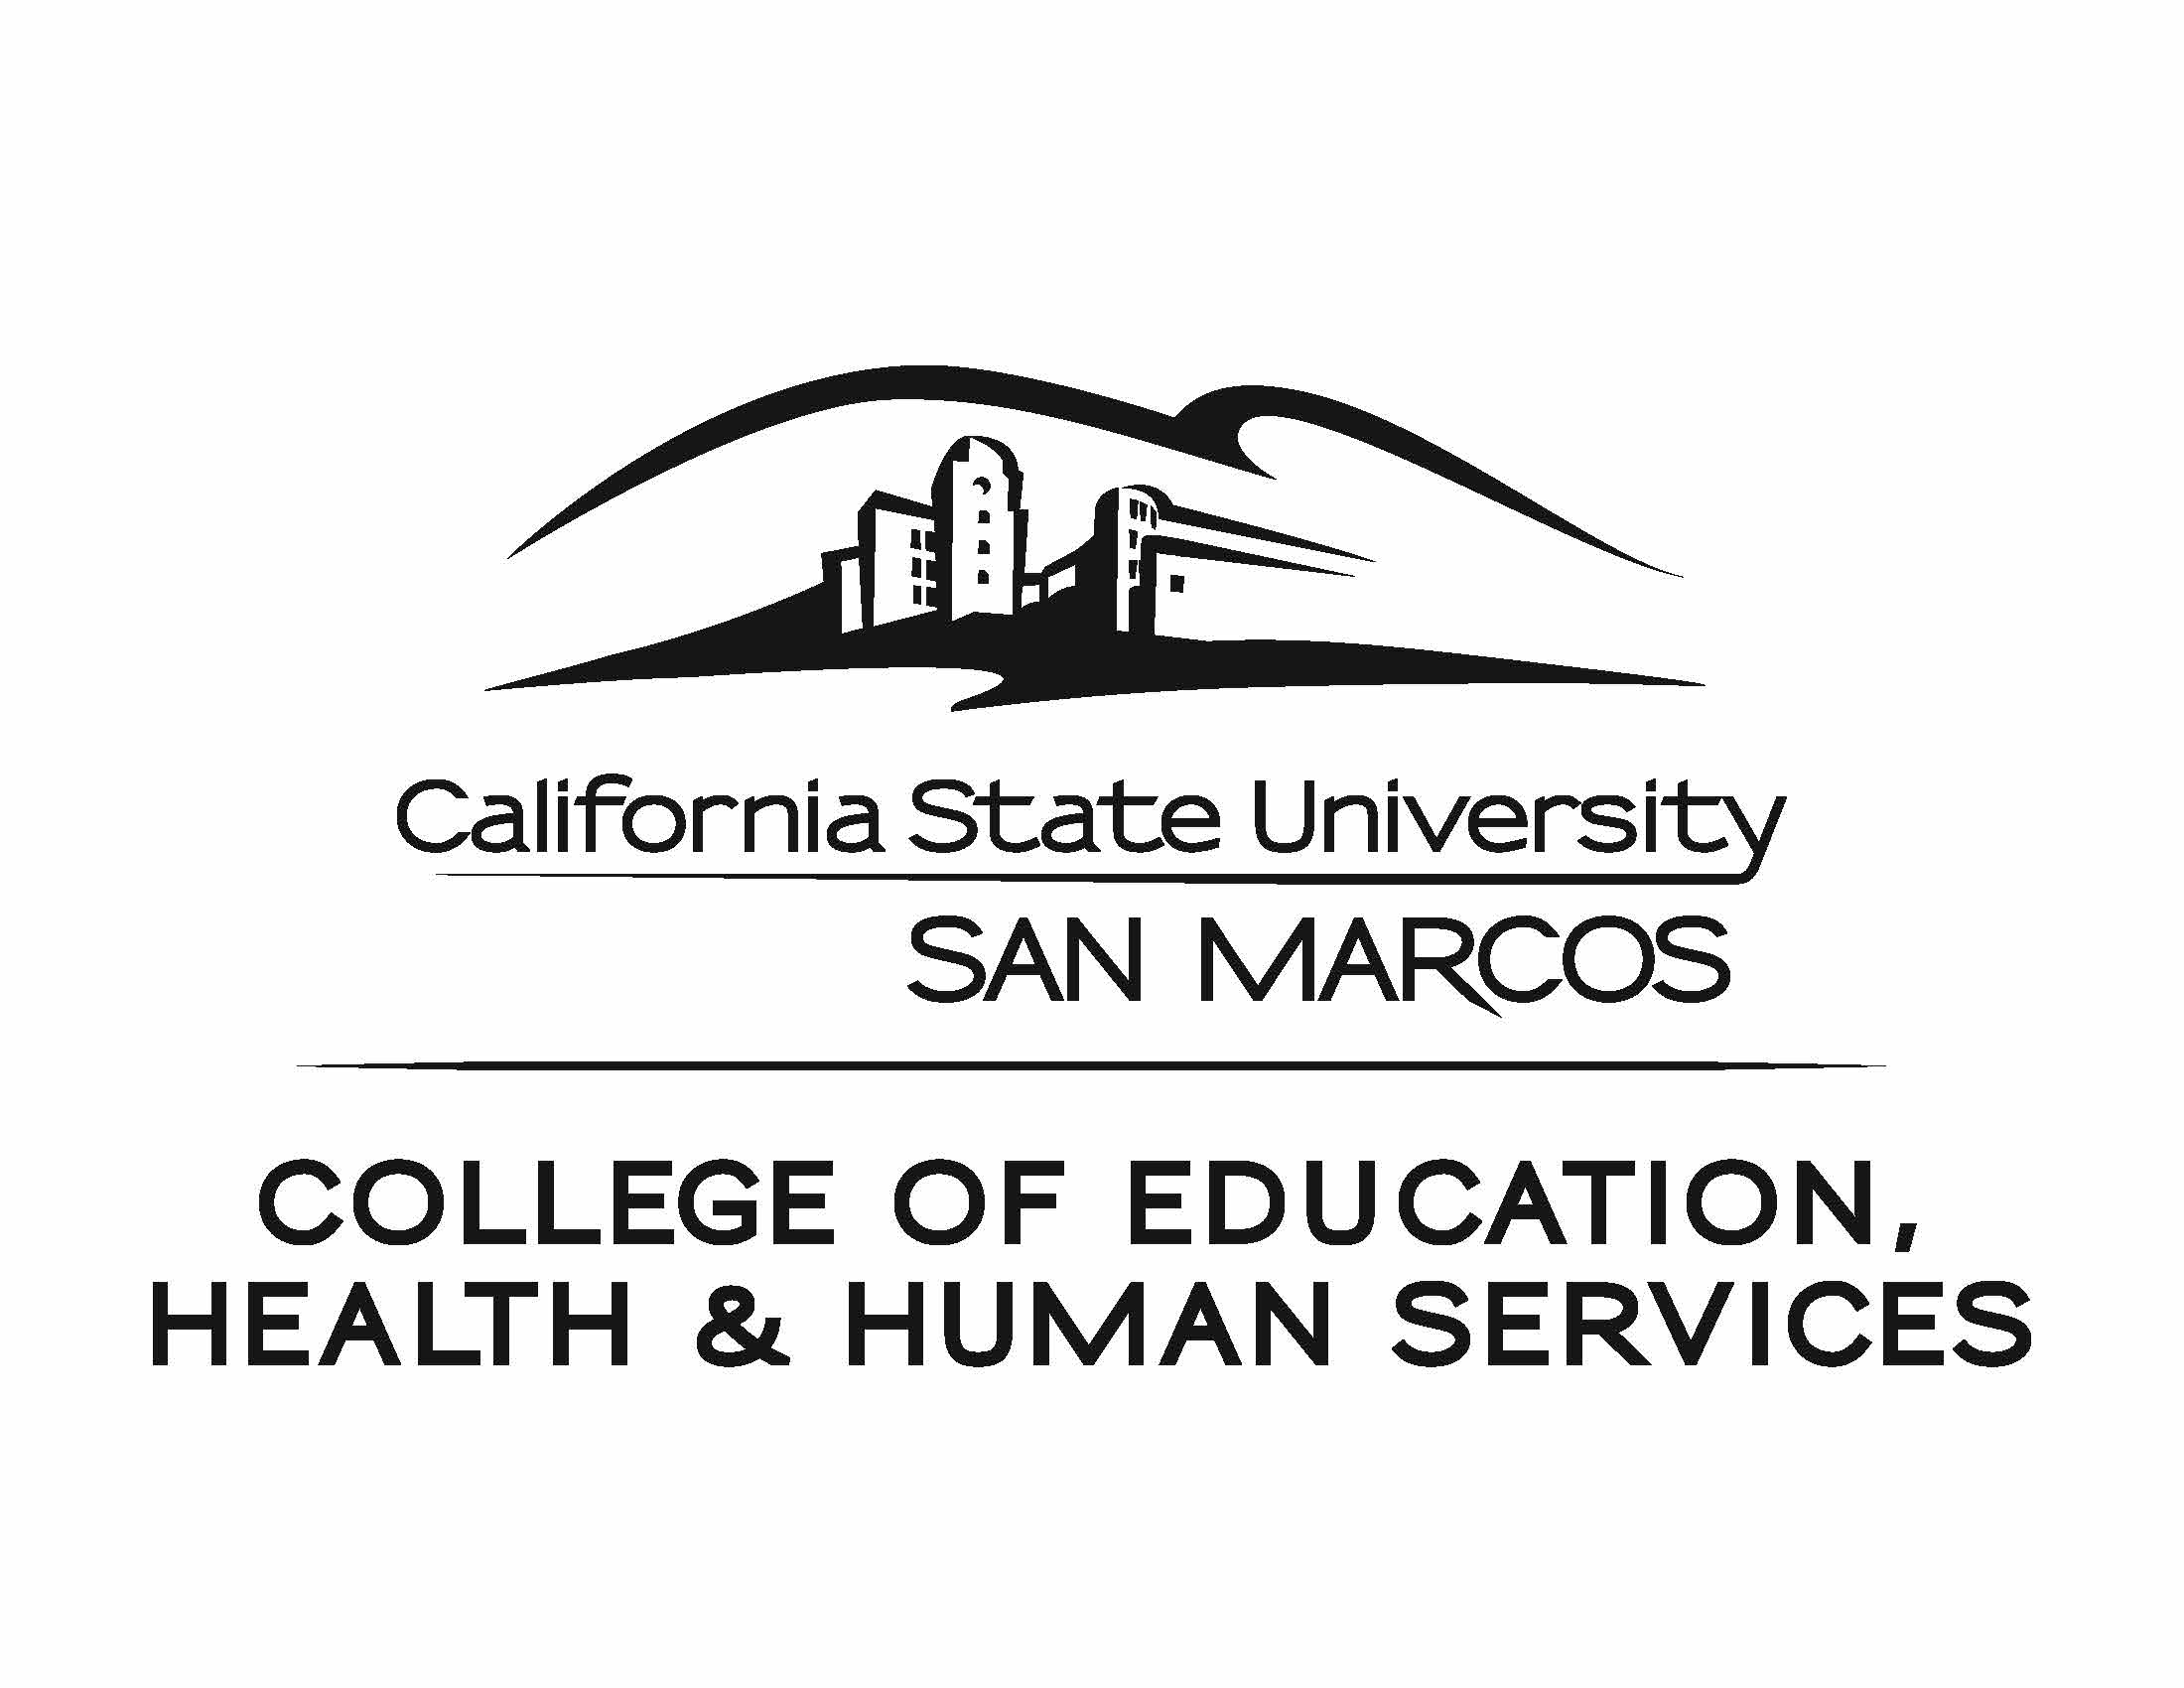 News: College of Education, Health & Human Services